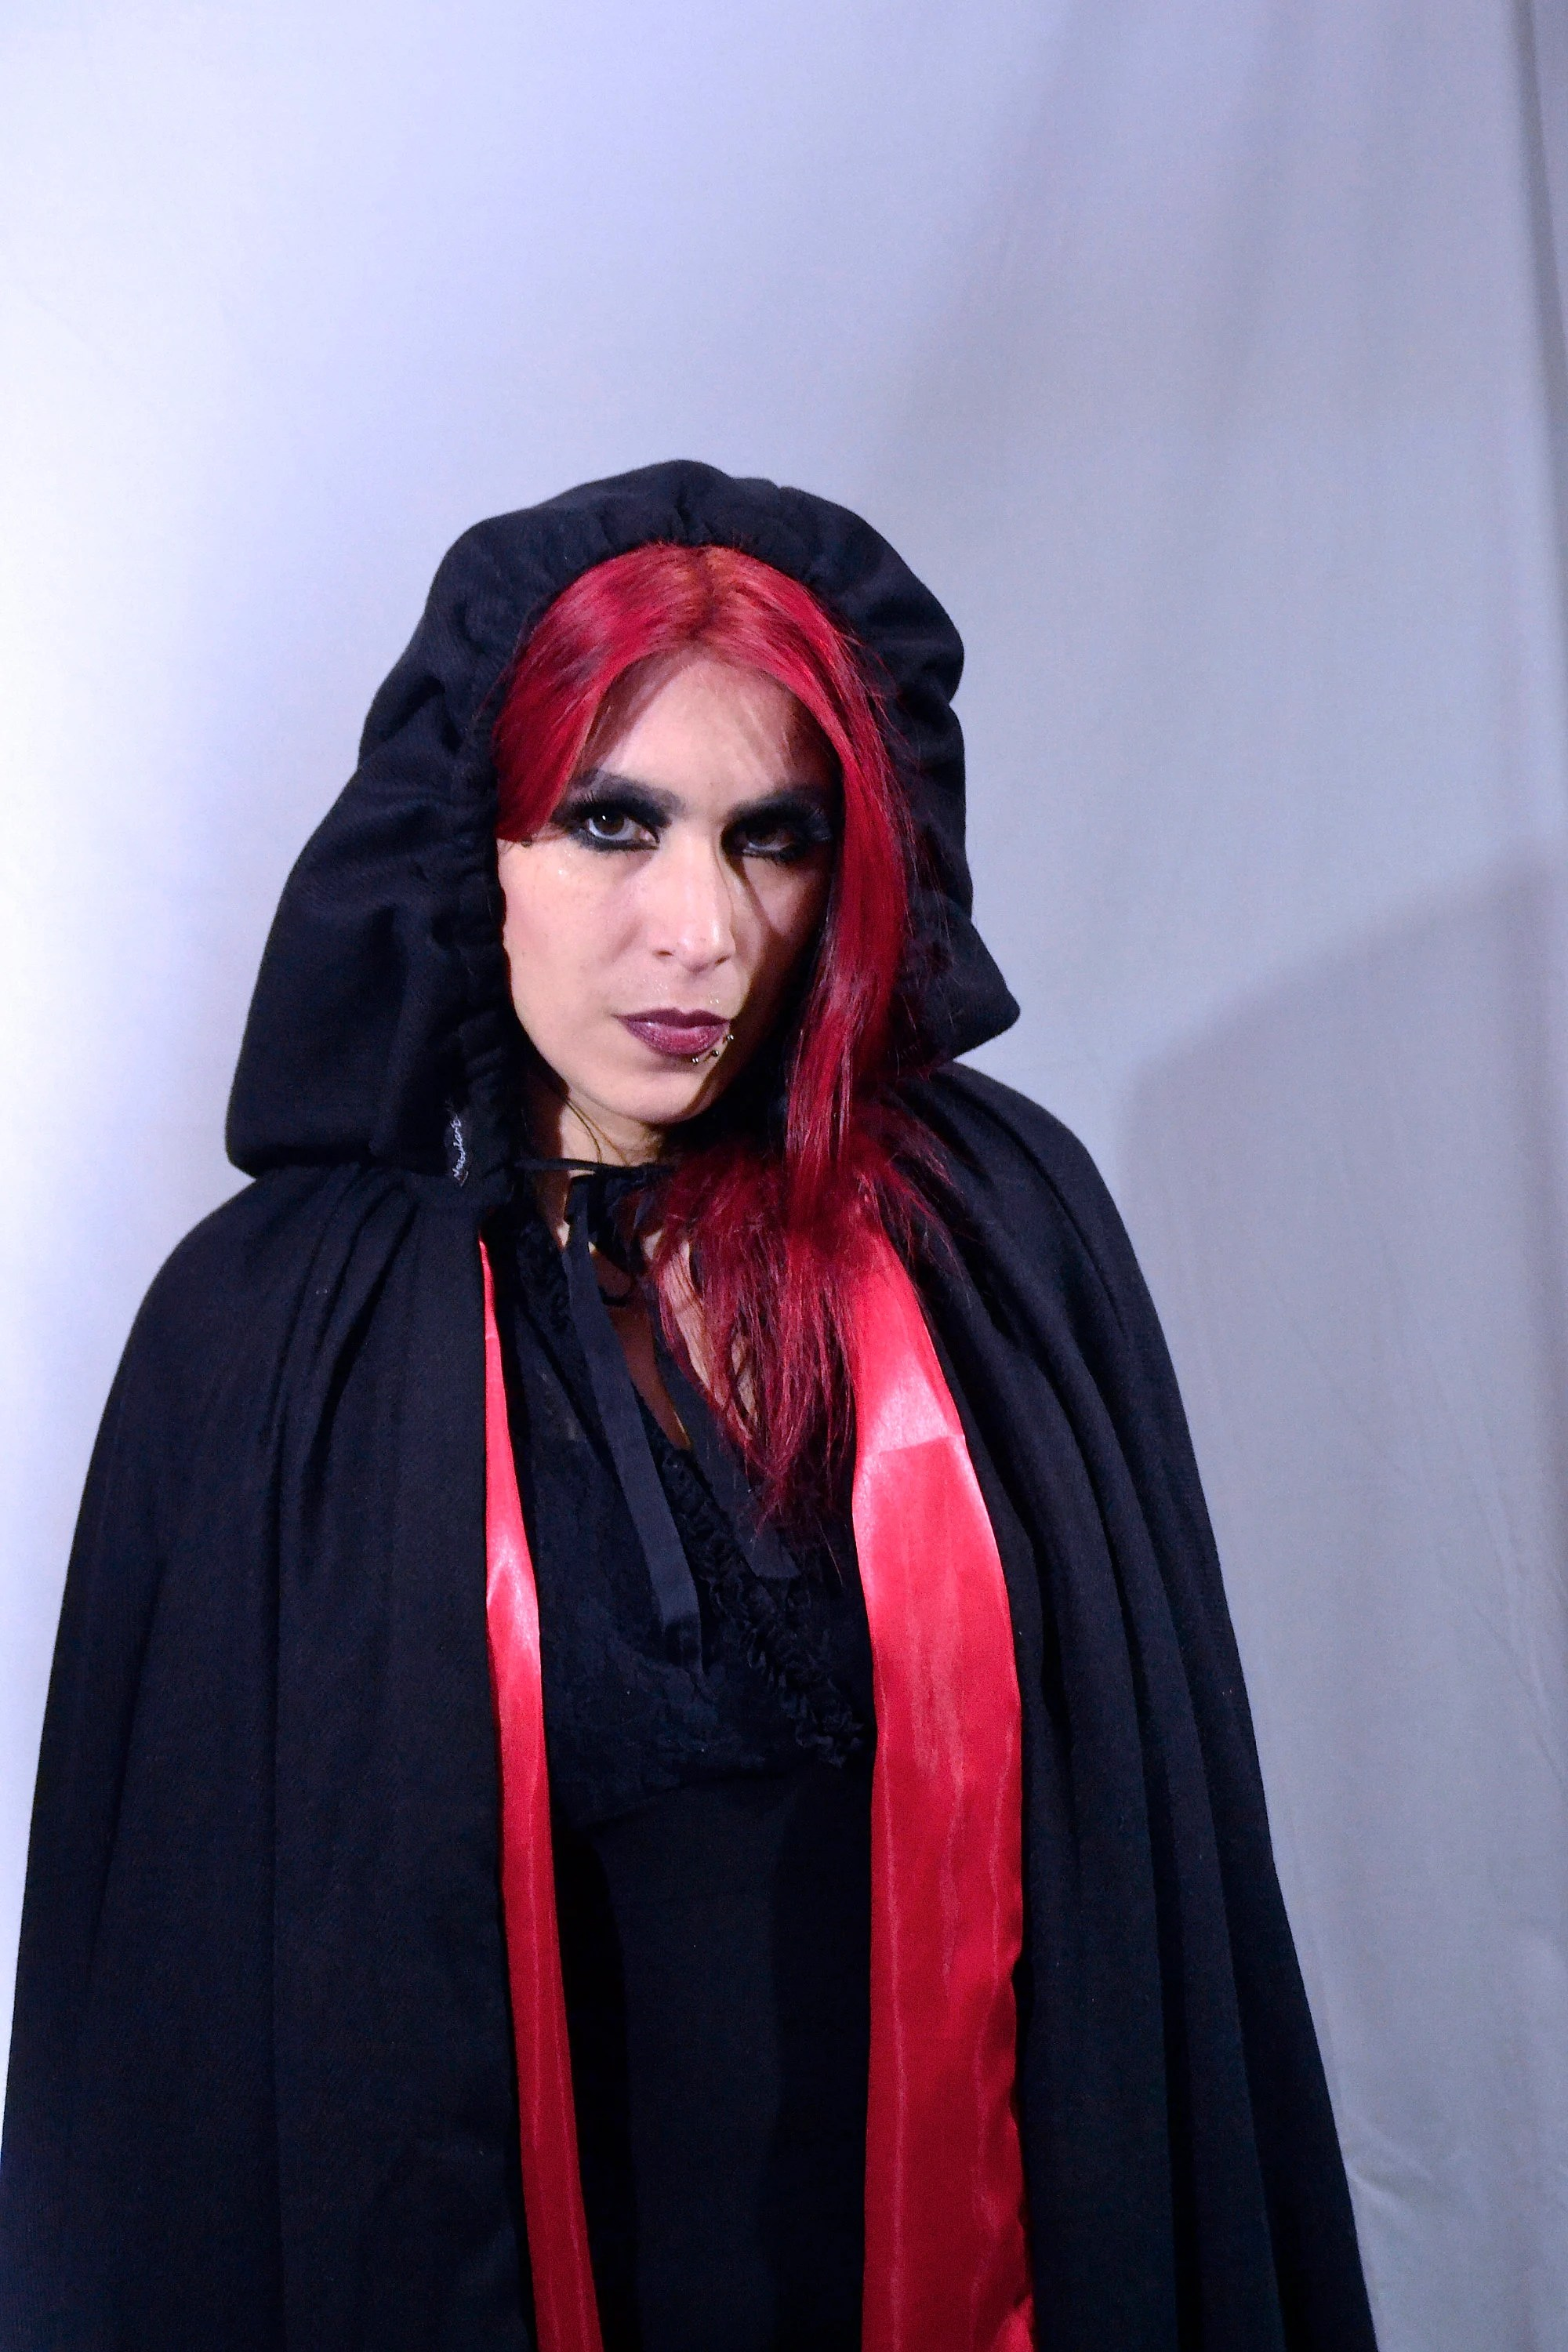 Berlin Gothic Cape Rococo Middle Ages Red Riding Hood Larp Gothic Mystic Witch Coachle Unisex Burlesque